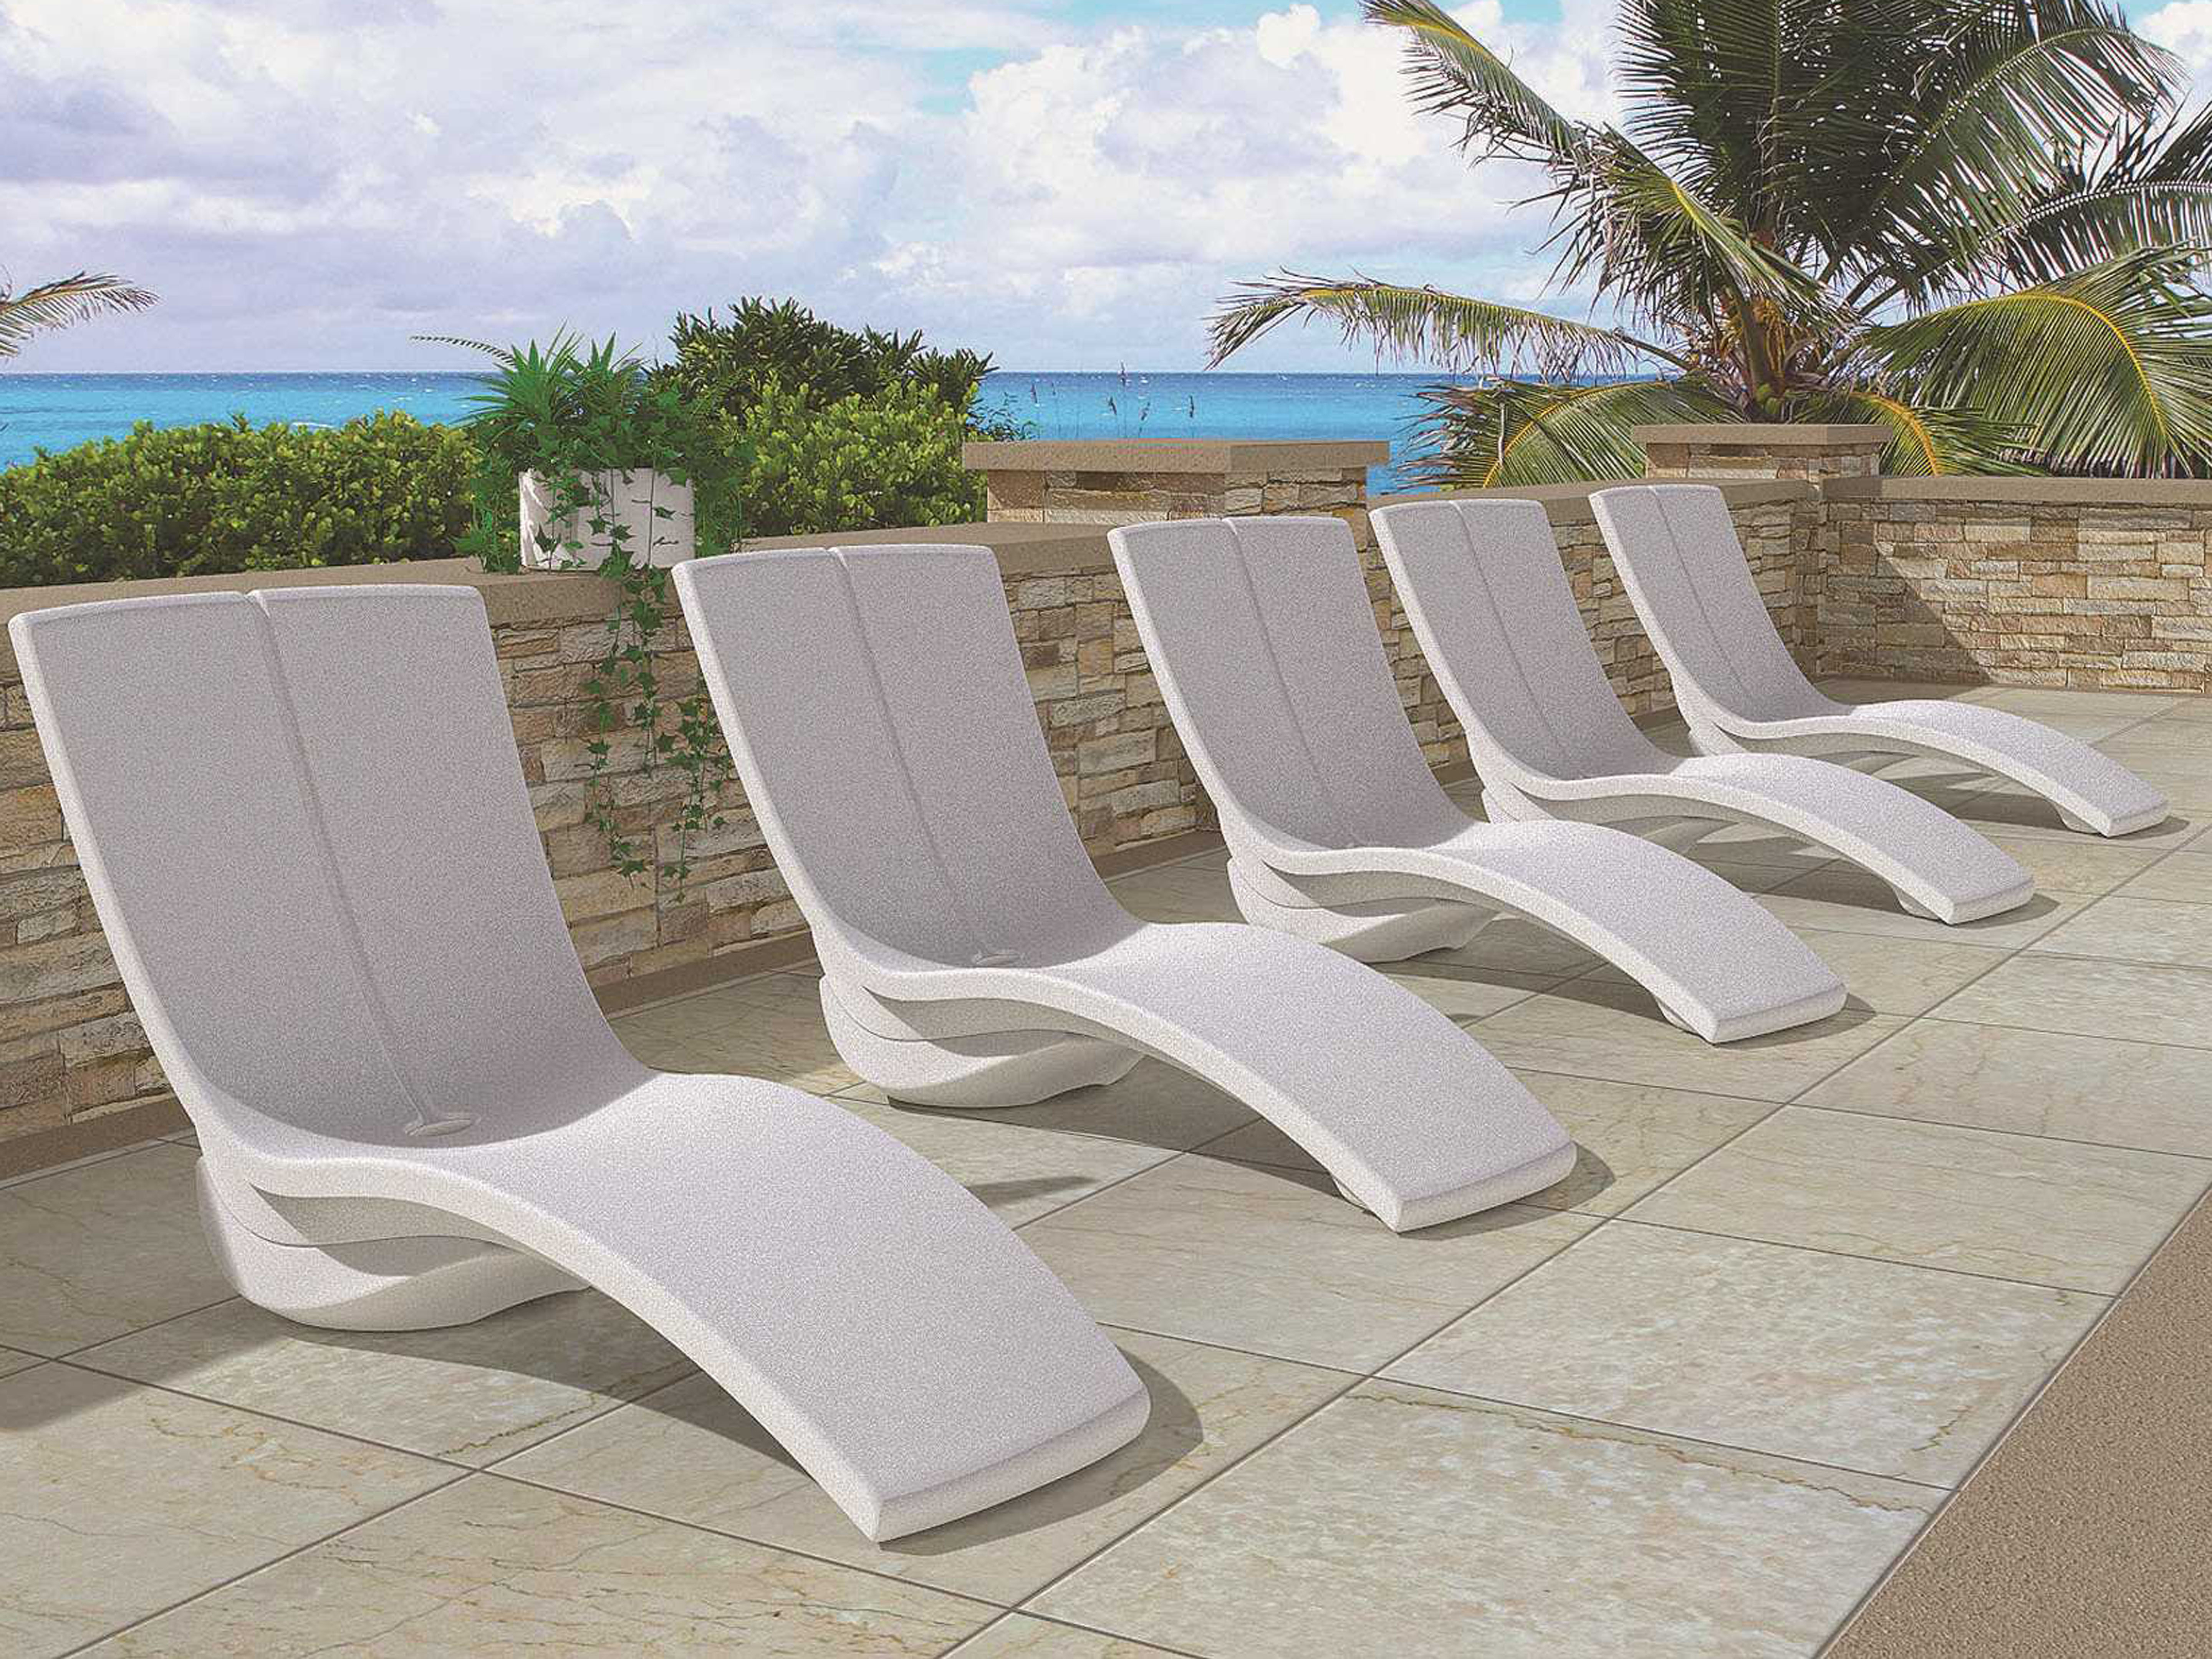 Curved Folding Chaise Loungers Intended For Famous Tropitone Curve Recycled Plastic Lounge Set (View 5 of 25)